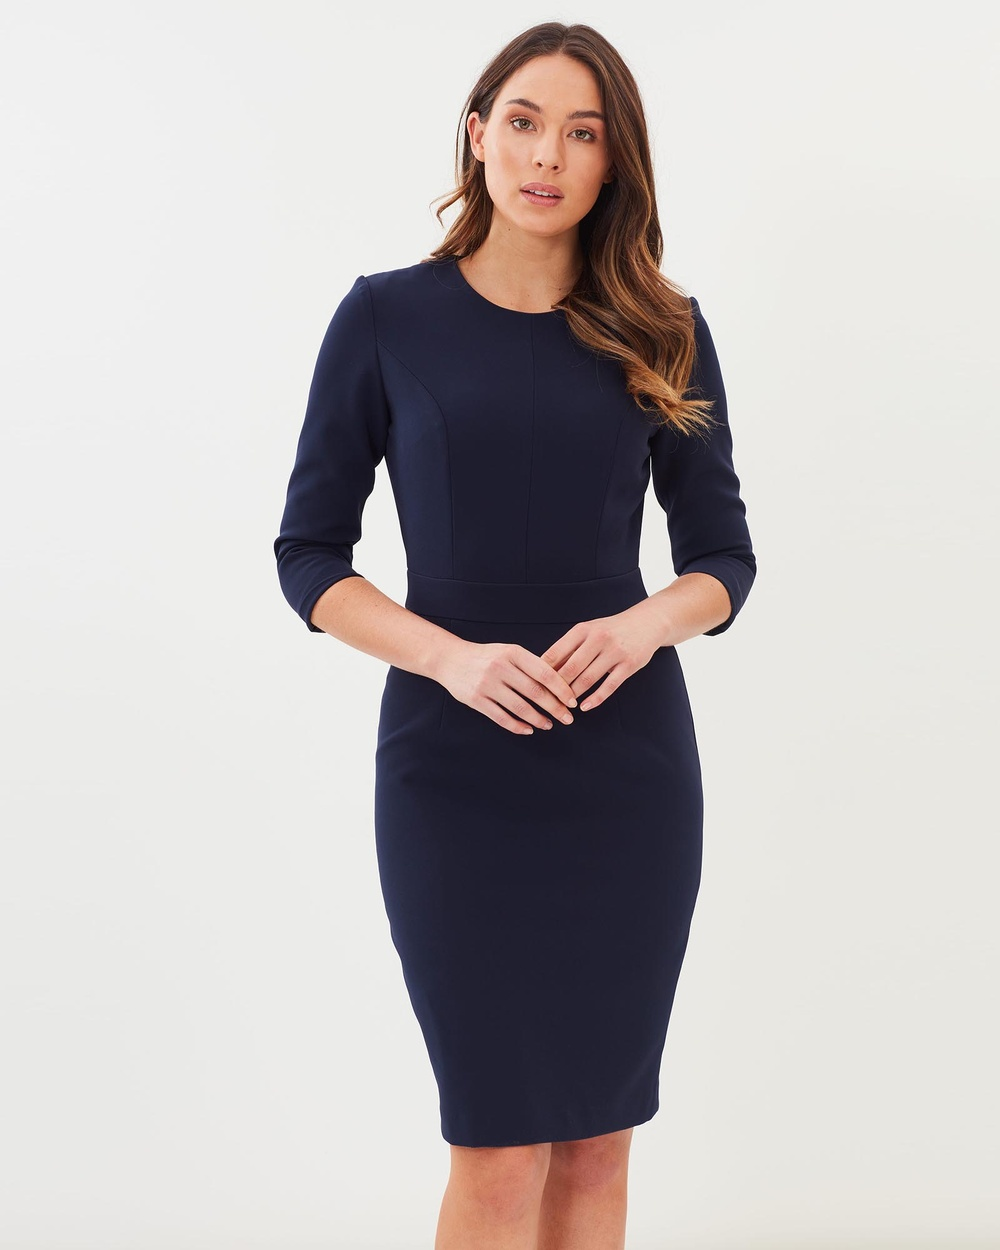 Farage Emeline Dress Dresses Navy Emeline Dress